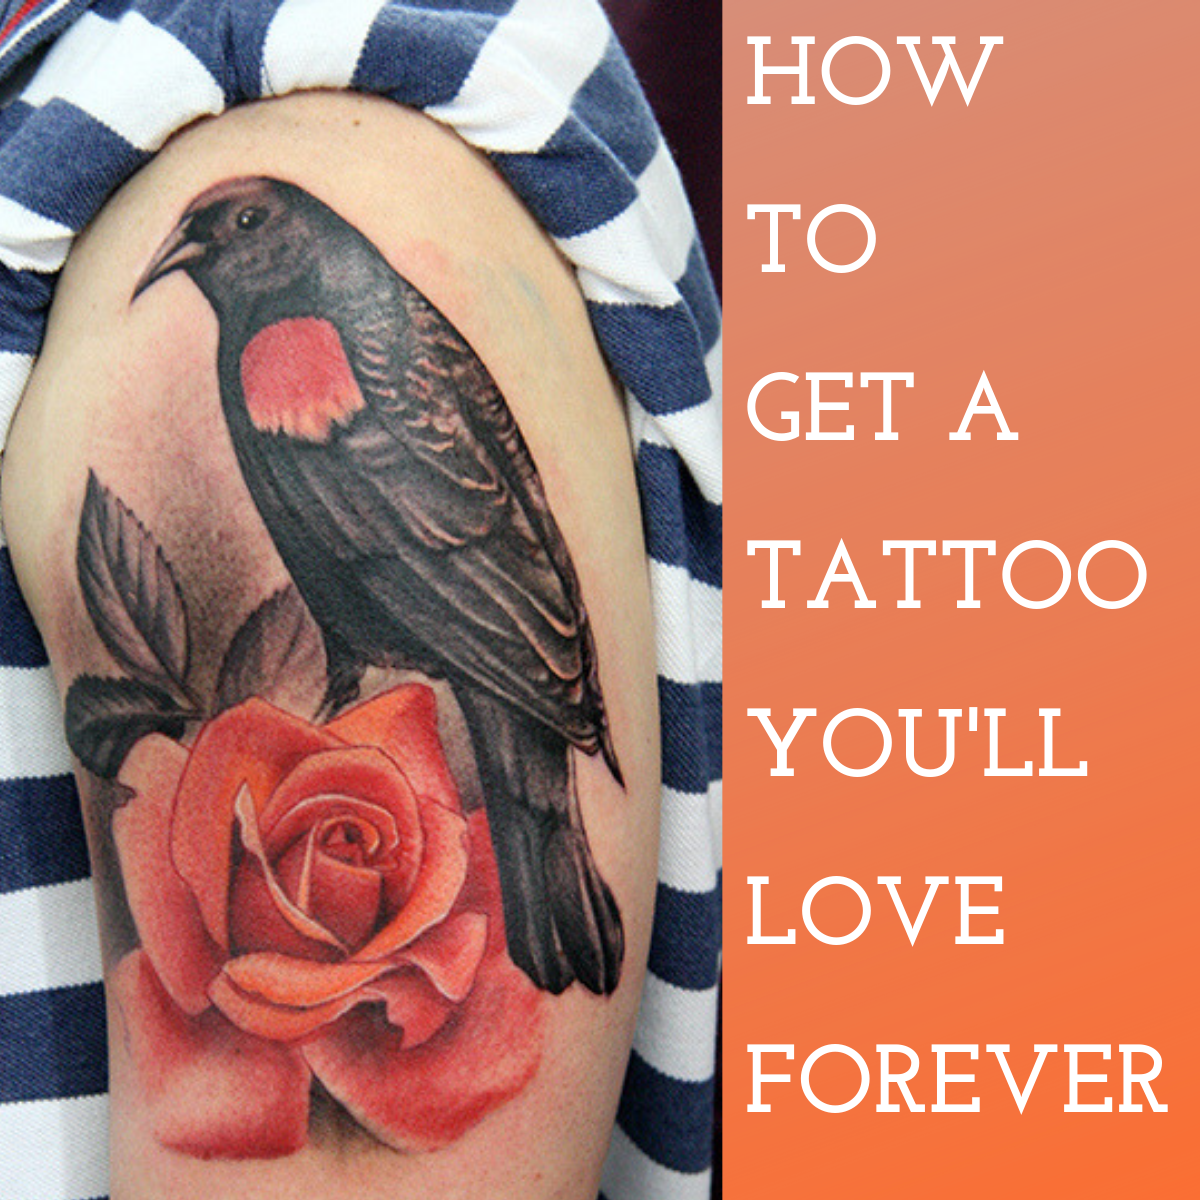 be1dbc582 A Tattoo Artist's Tips for Getting a Tattoo You'll Love Forever ...